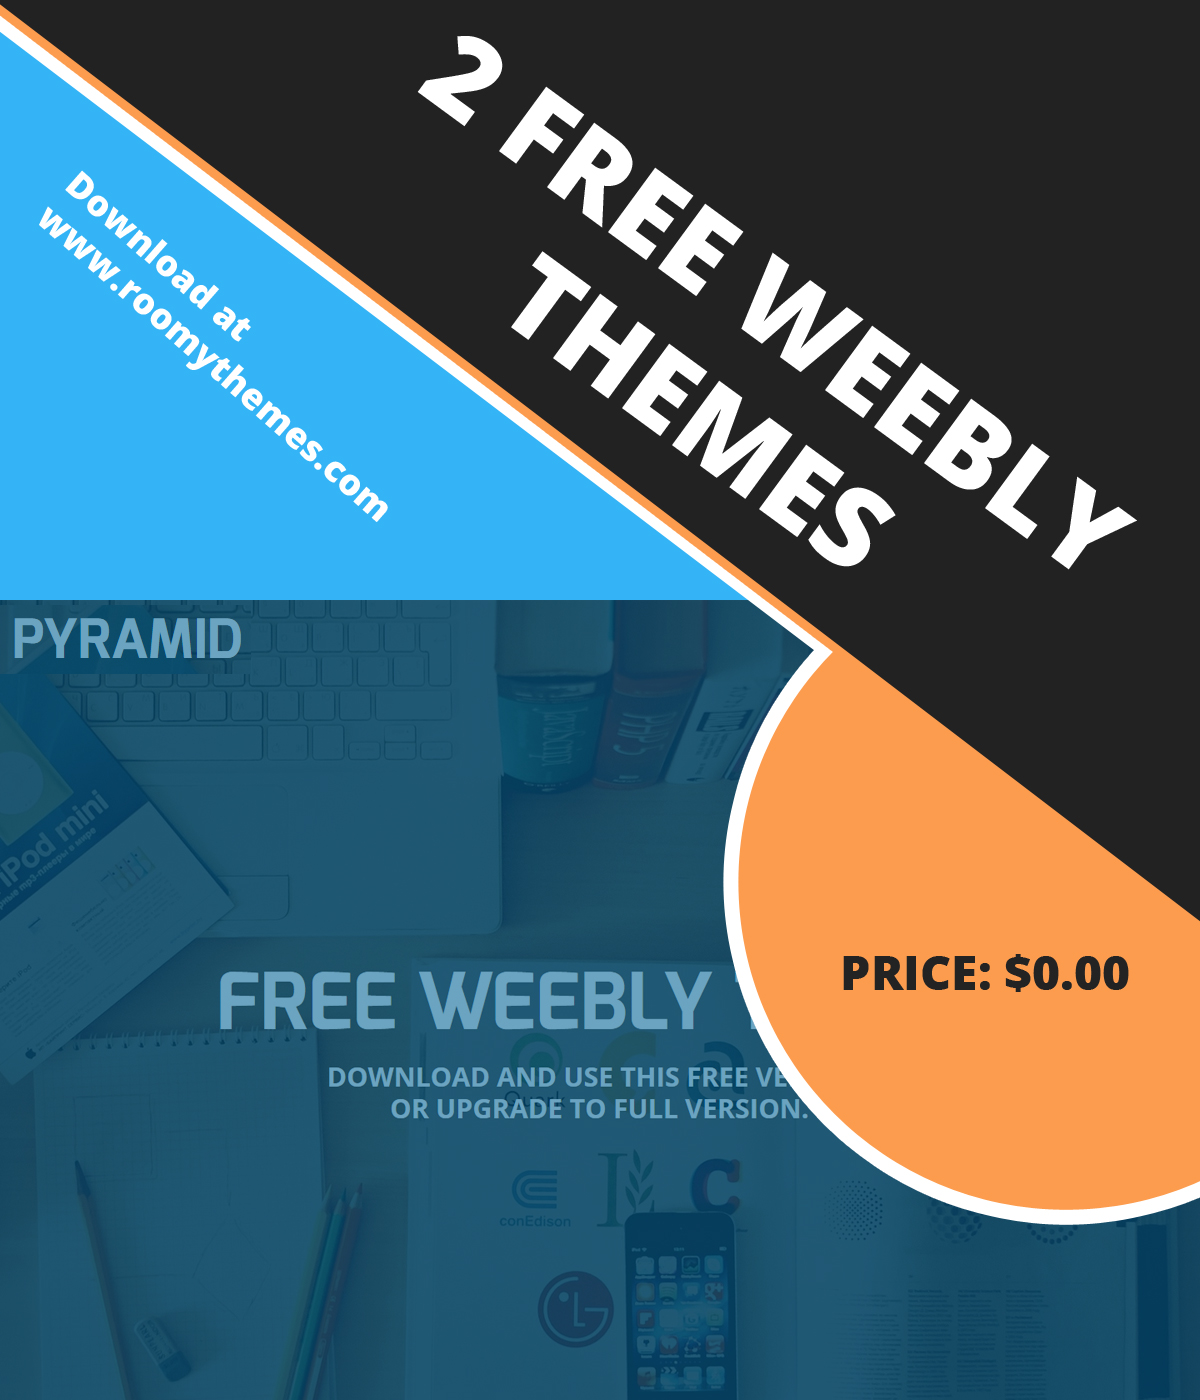 2 new free weebly themes to download roomy themes for Free weebly themes and templates